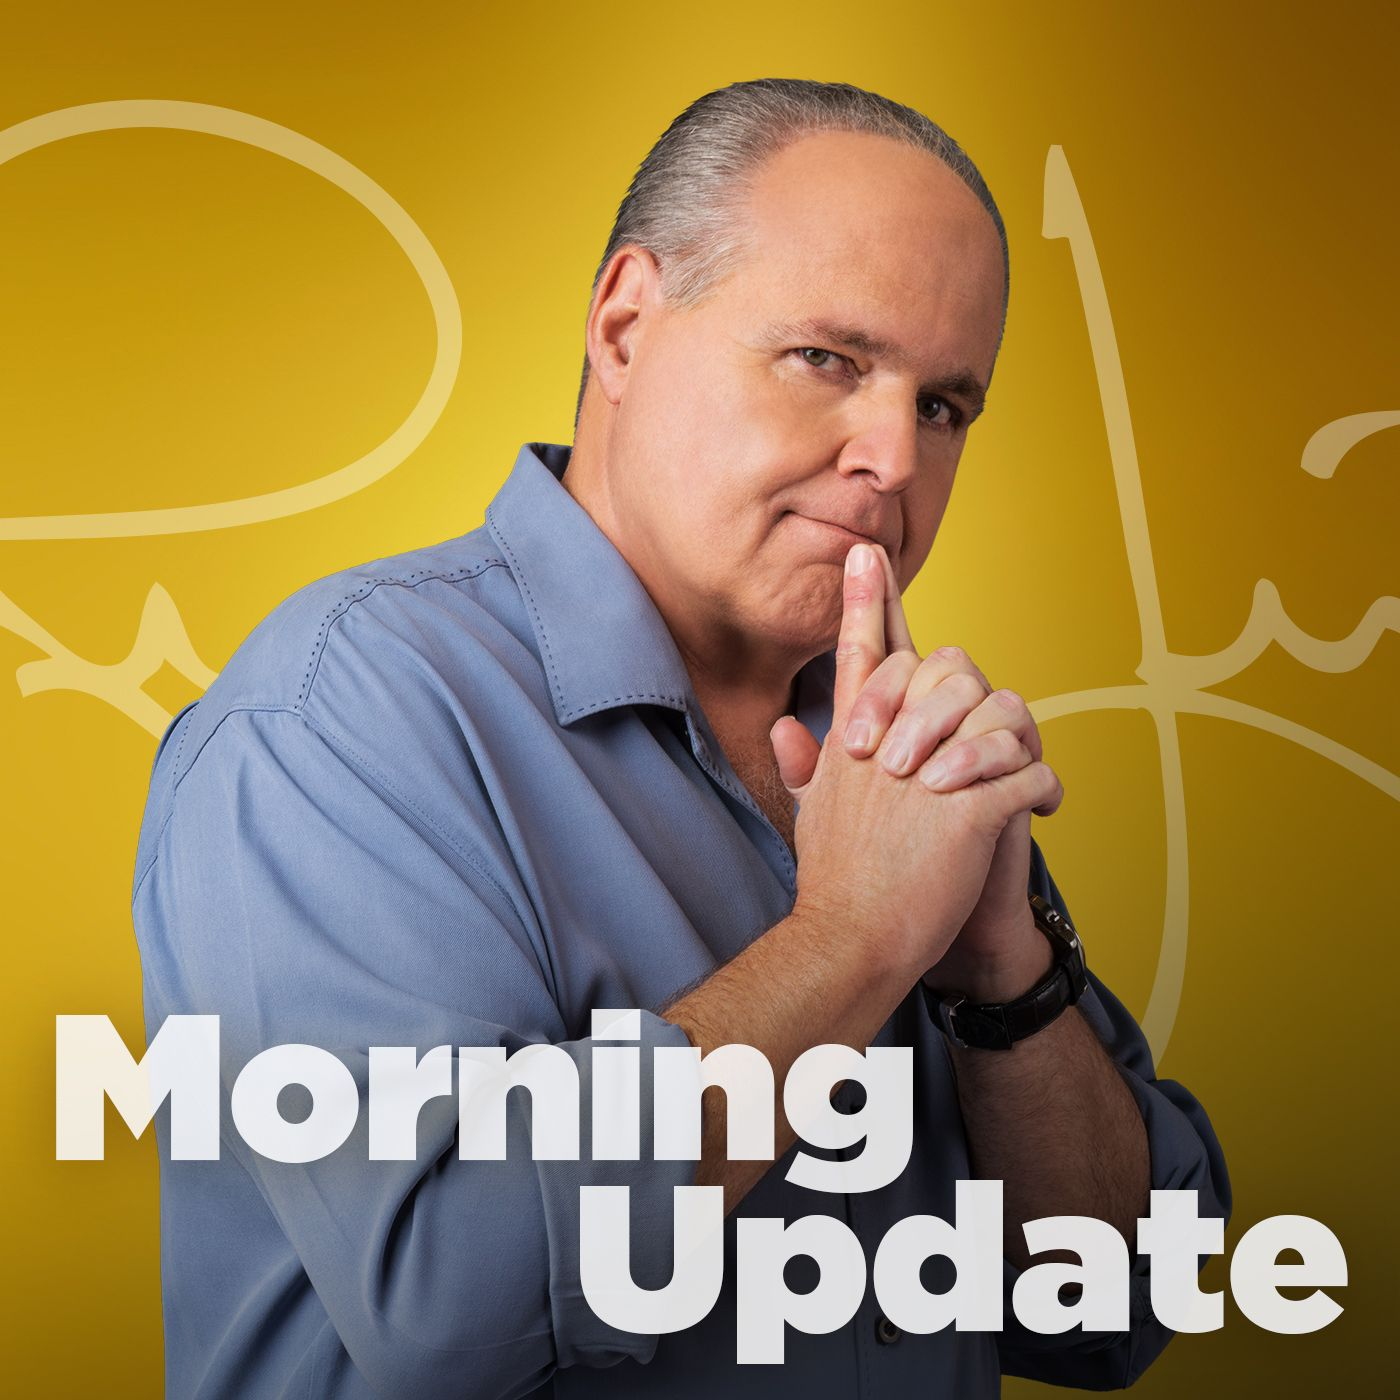 Rush Limbaugh Jul 02, 2020